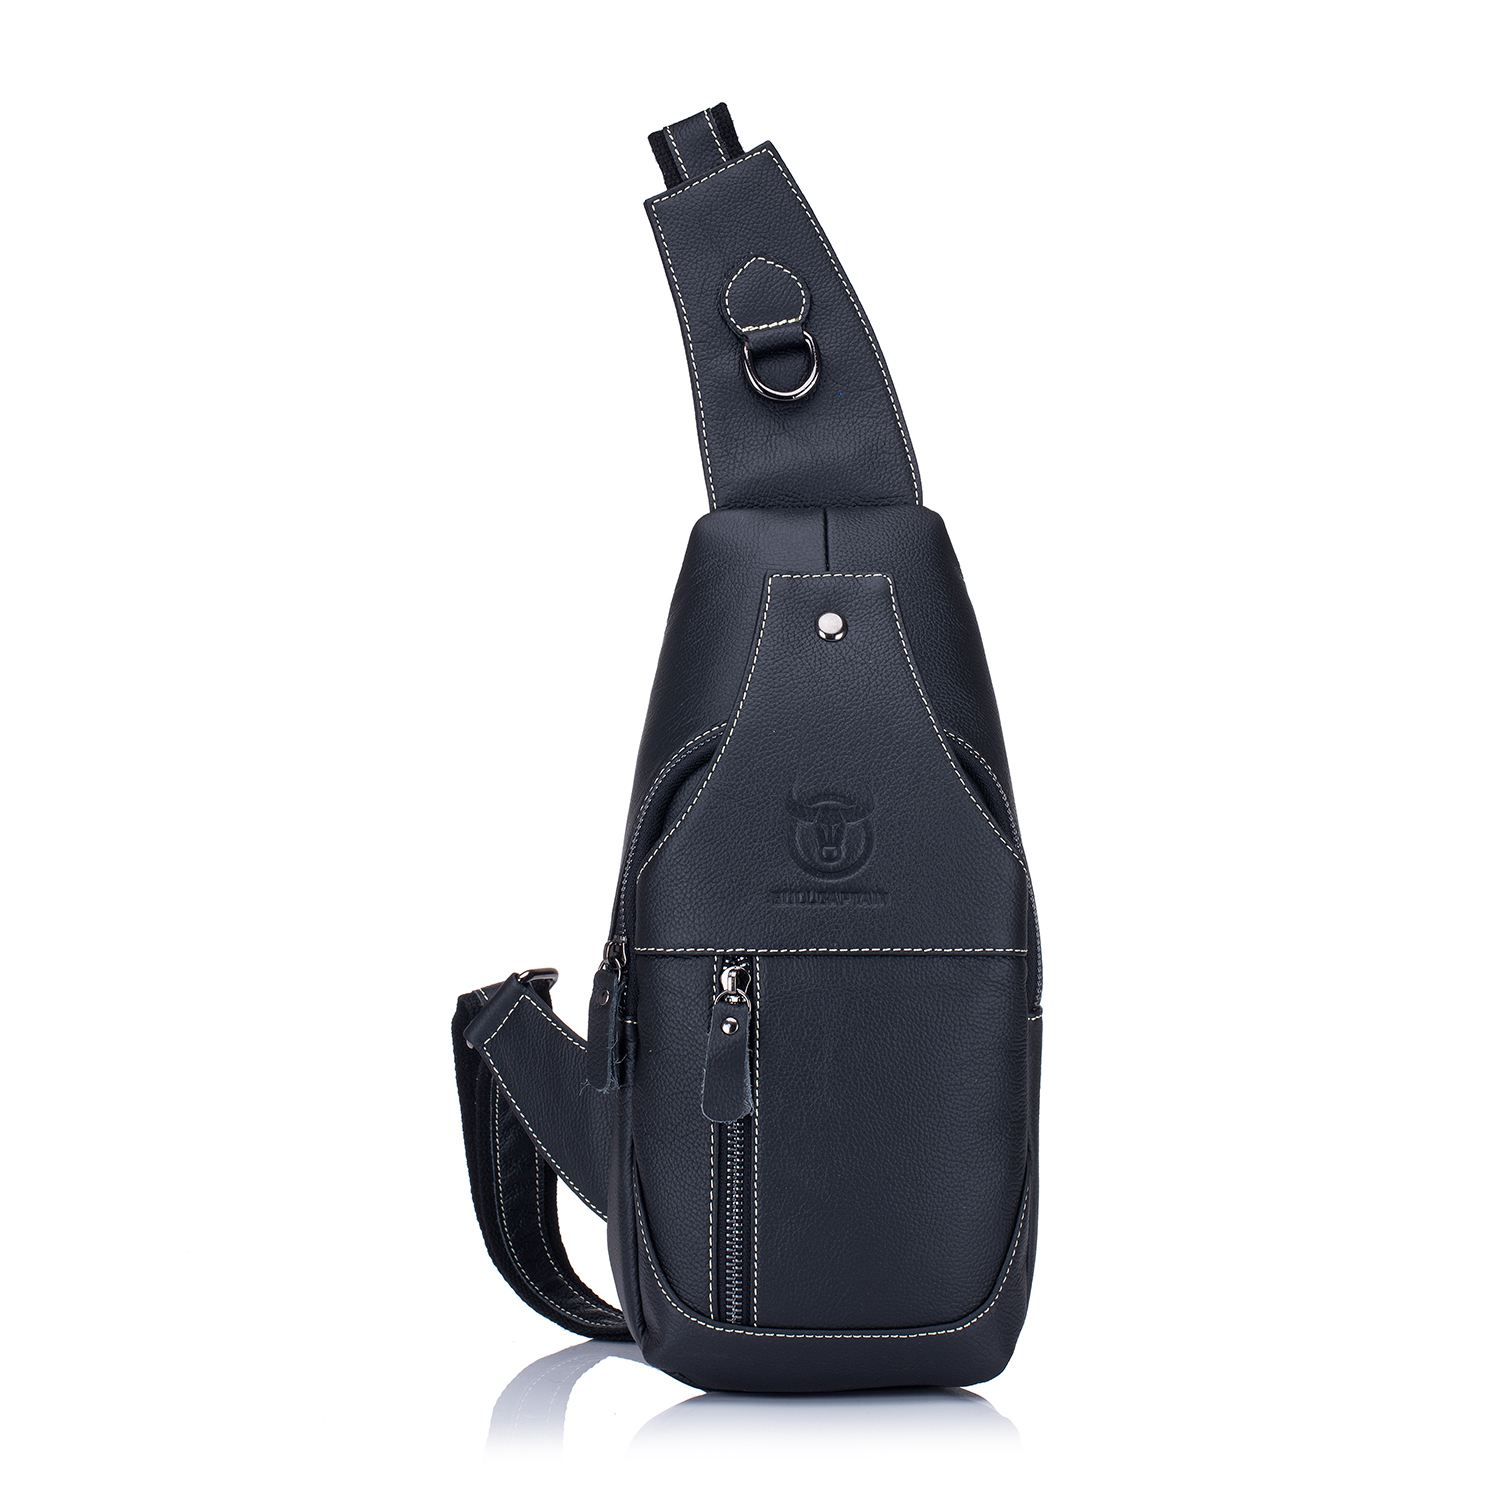 Men's Sling Bag Genuine Leather Chest Shoulder Backpack Cross Body Purse Water Resistant Anti Theft For Travel School j m d genuine leather men s shoulder messenger travel bag bucket jmd cross body purse for school backpack hand bags 2003